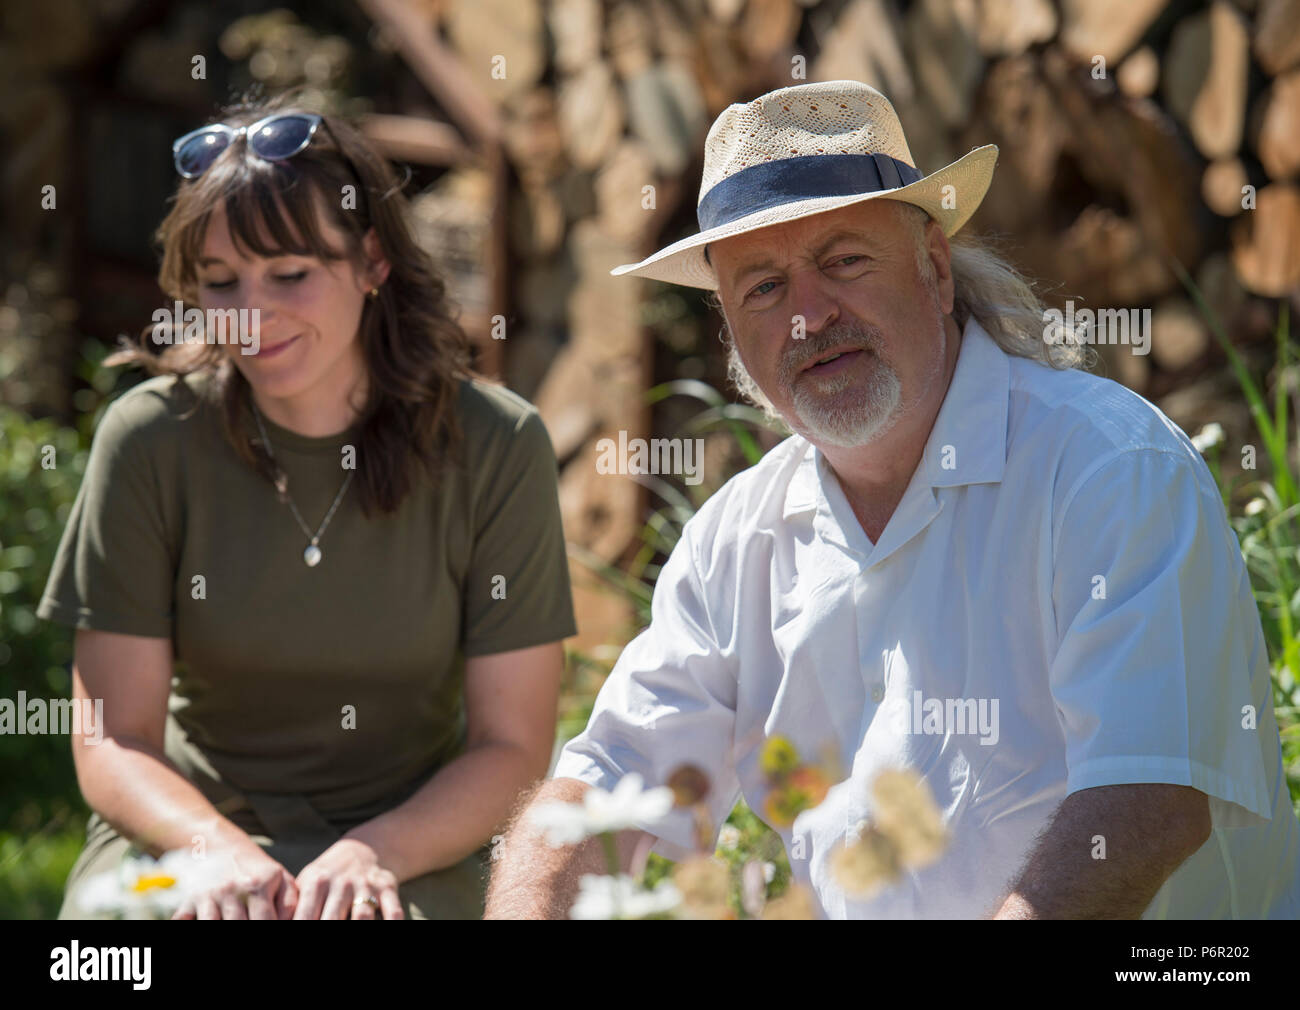 Hampton Court Palace, Surrey, UK. 2 July, 2018. The world's largest annual flower show, RHS Hampton Court Palace Flower Show supported by Viking Cruises, opens to the public from 5 - 8 July 2018. Comedian and wildlife enthusiast Bill Bailey visits The Family Garden designed by Lilly Gomm. Credit: Malcolm Park/Alamy Live News. - Stock Image